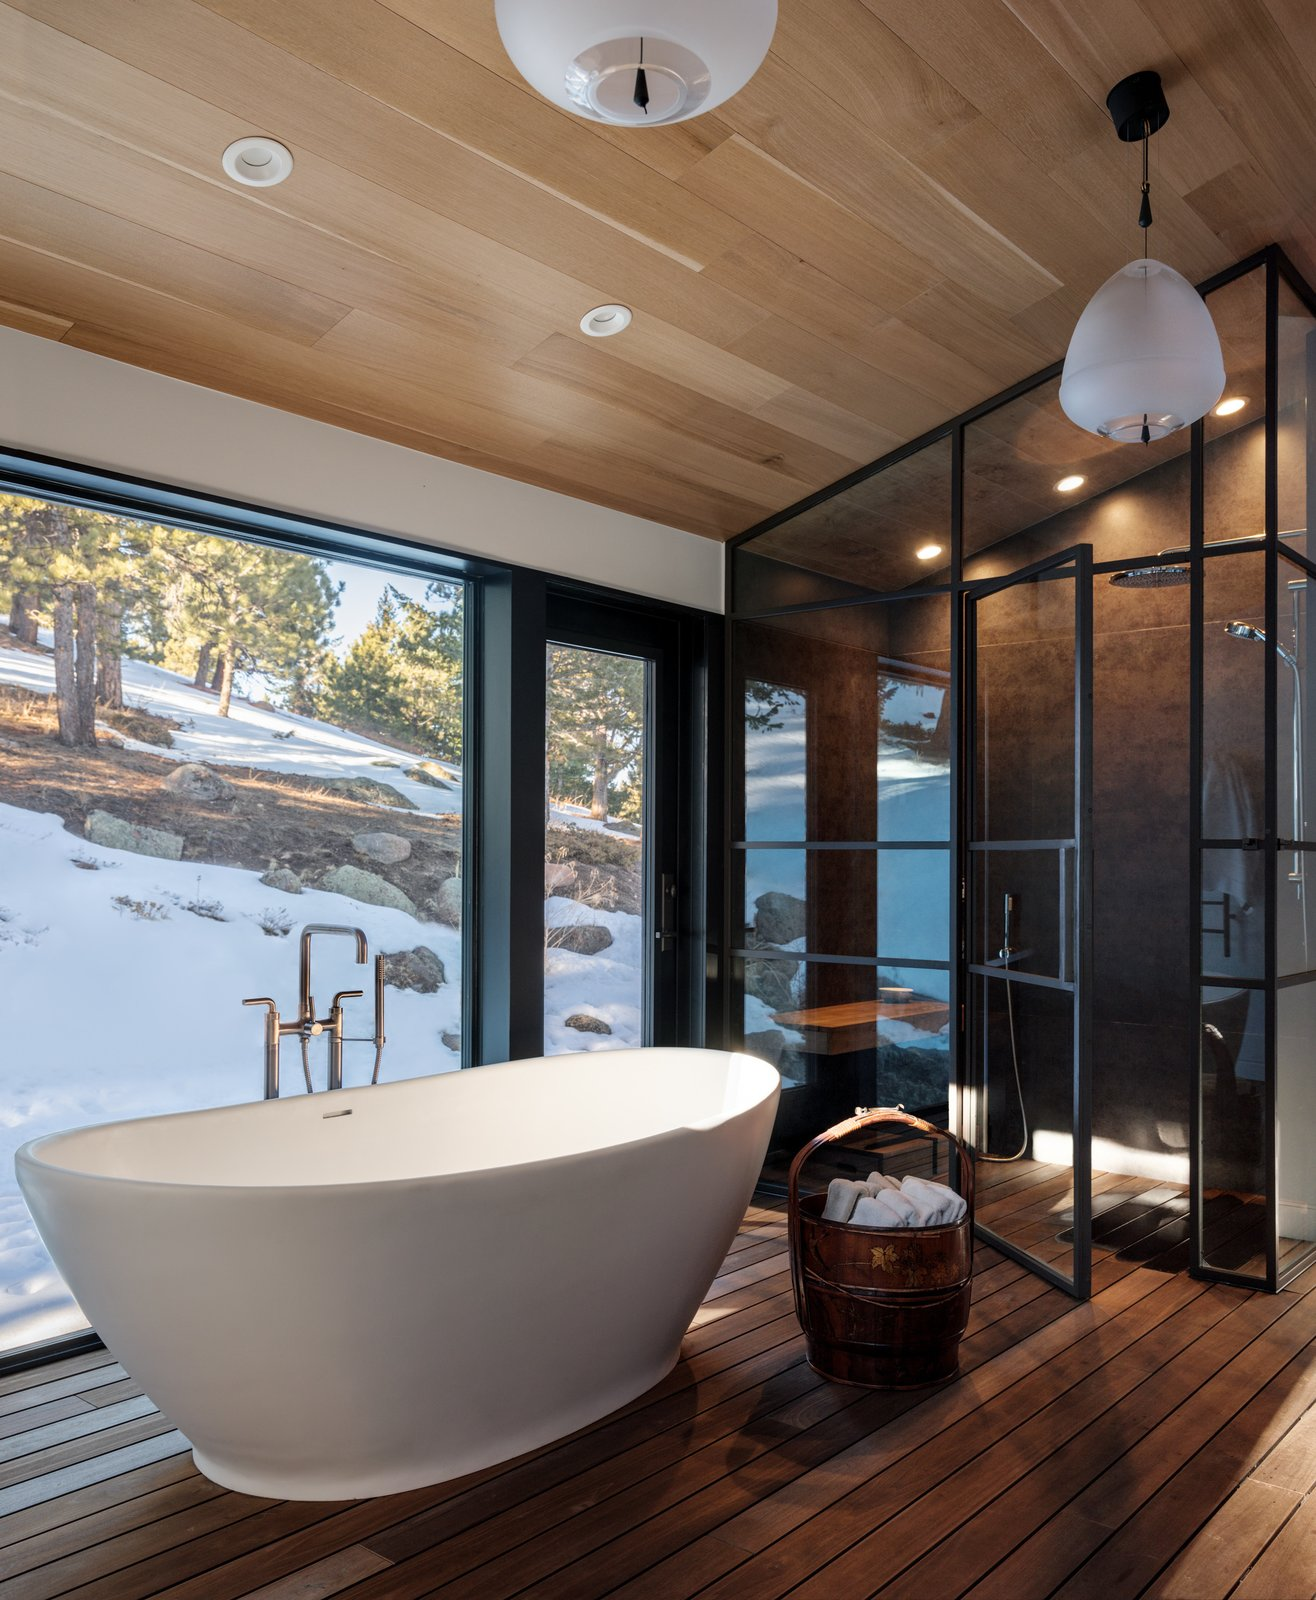 Bath, Freestanding, Medium Hardwood, Enclosed, and Pendant The large floating bathtub invites relaxation and serenity.  Bath Enclosed Medium Hardwood Photos from Modern Cabin